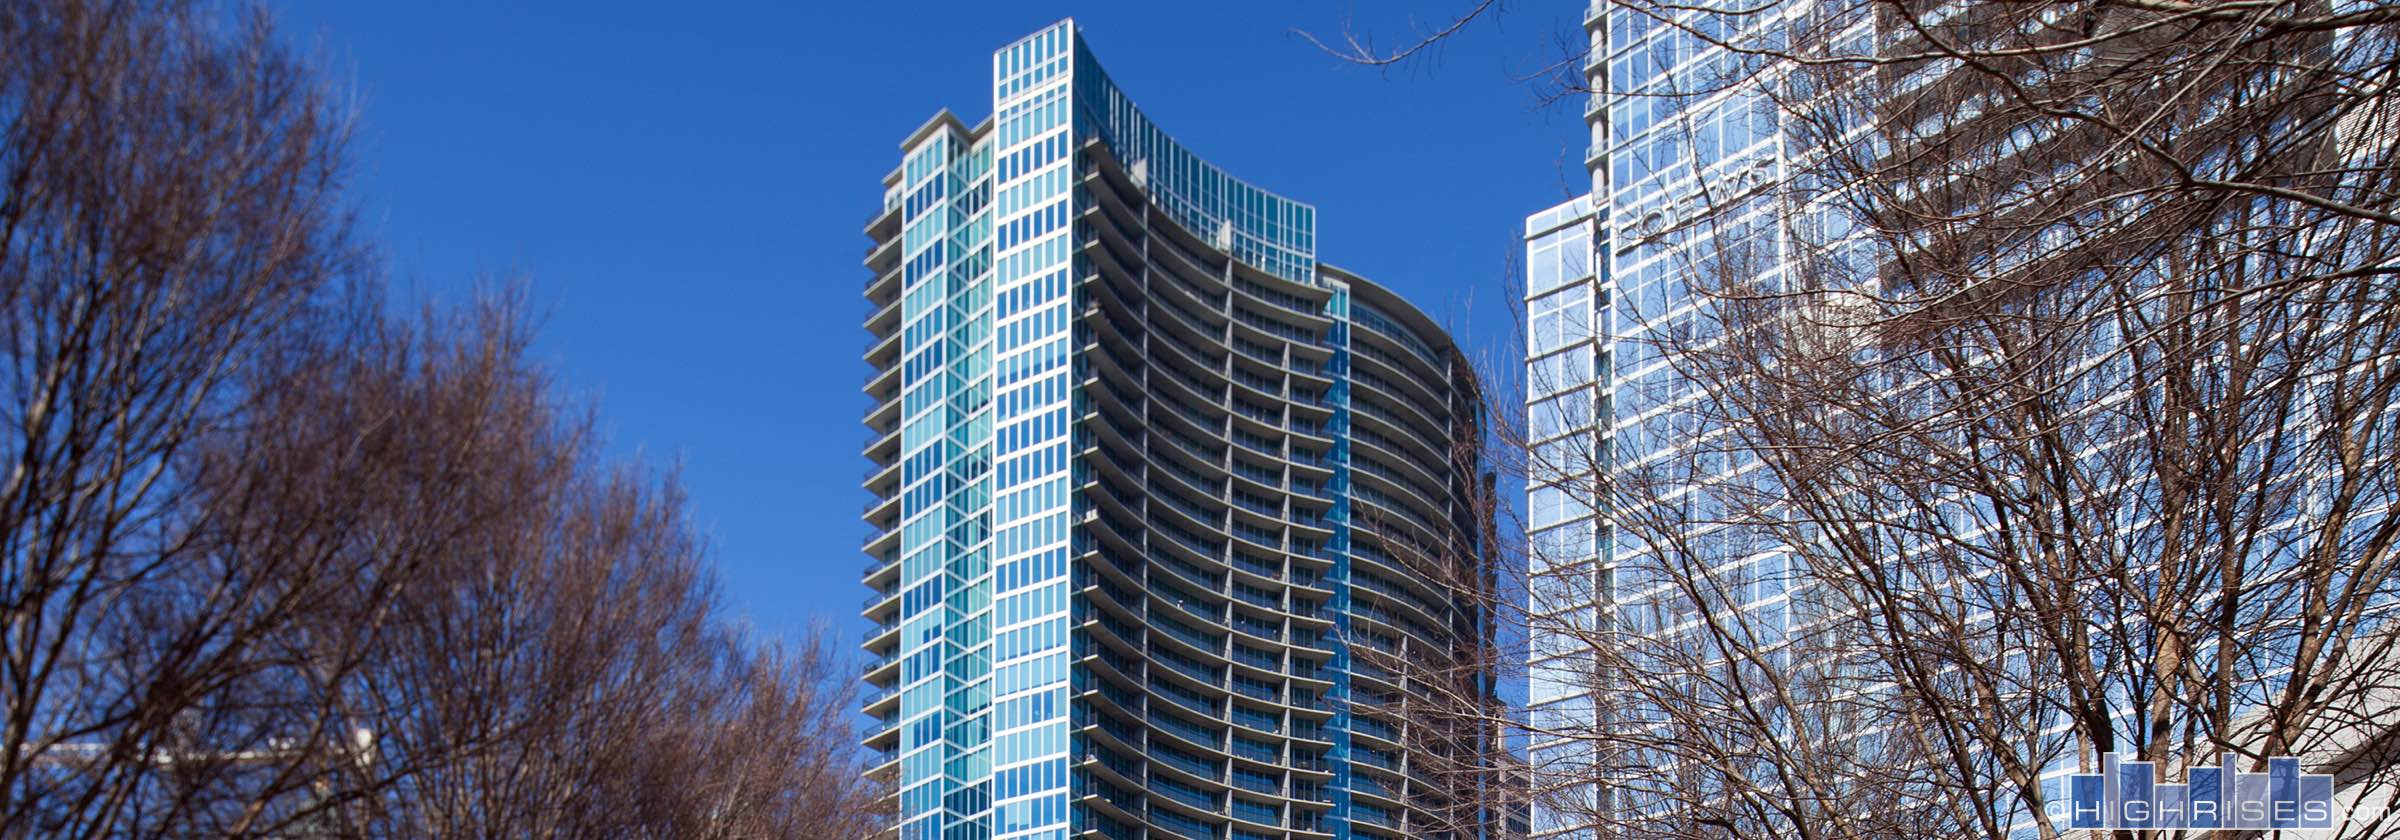 1010 Midtown Condos of Atlanta, GA | 1080 Peachtree St NE